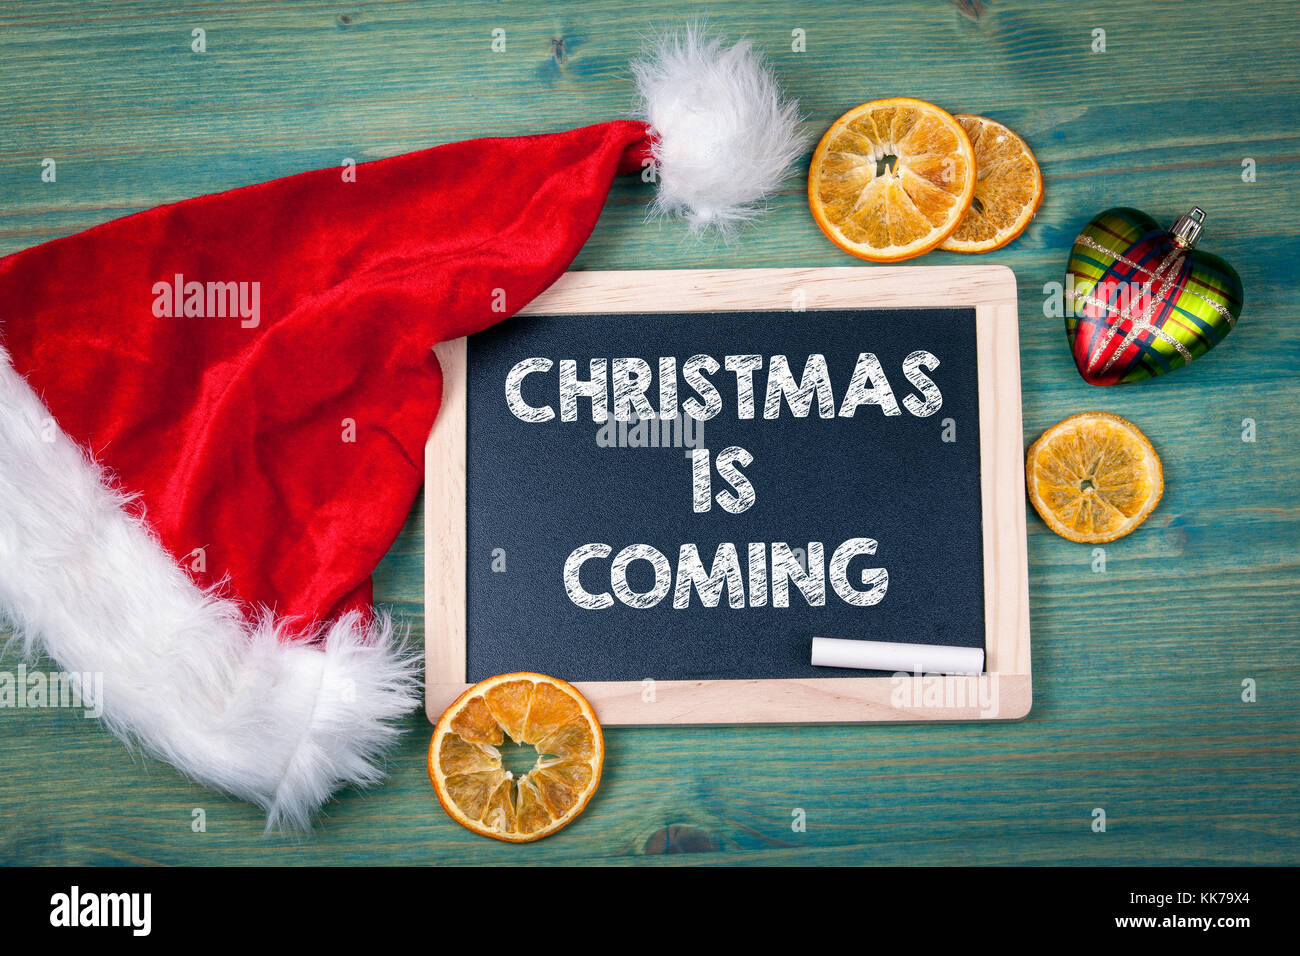 Christmas is Coming. Holiday background. Ornaments and decor on a wooden table - Stock Image